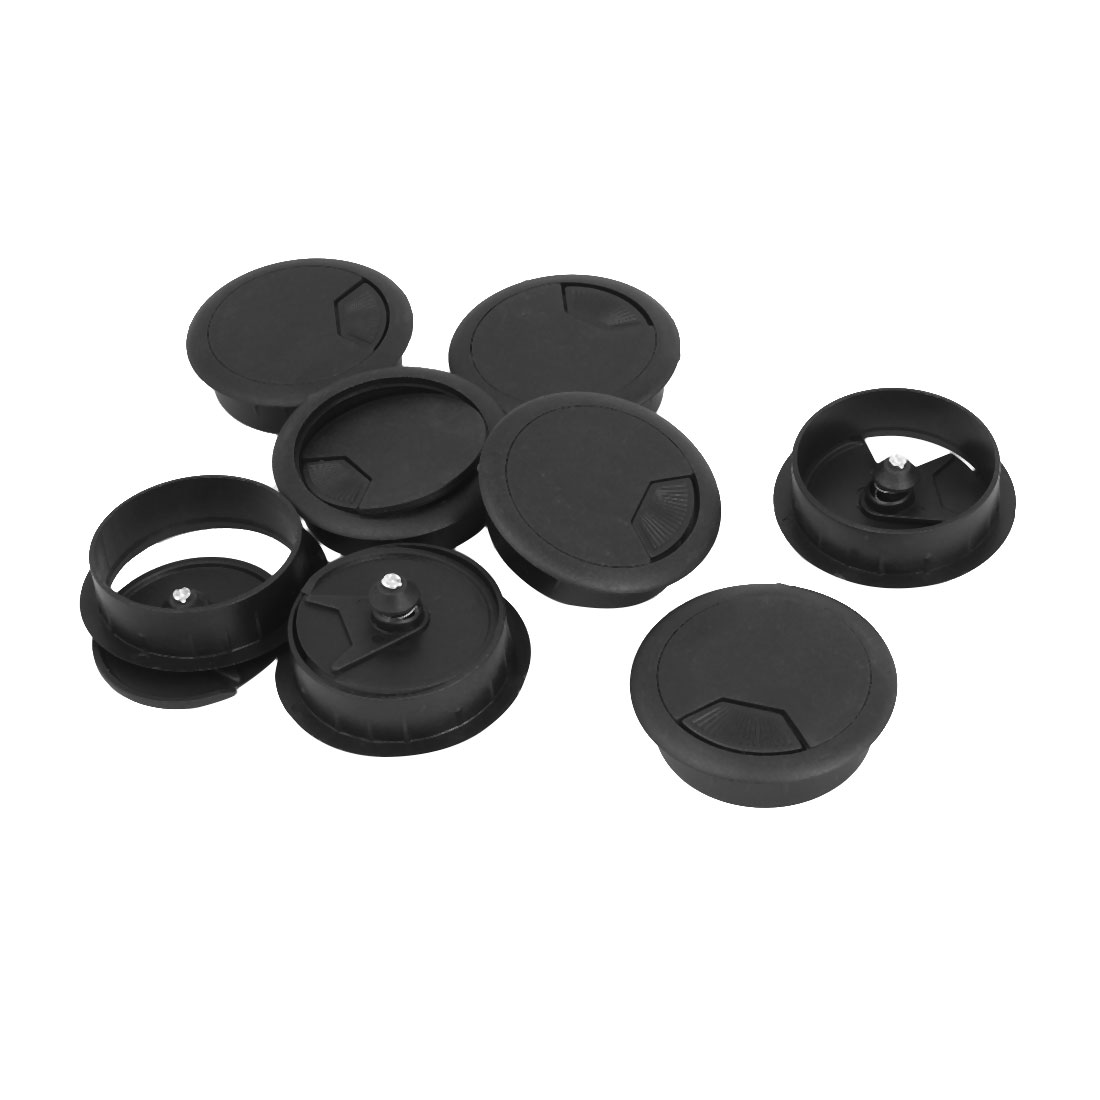 Computer Desk Table Plastic Grommet Wire Cable Hole Cover Cap Black 8Pcs